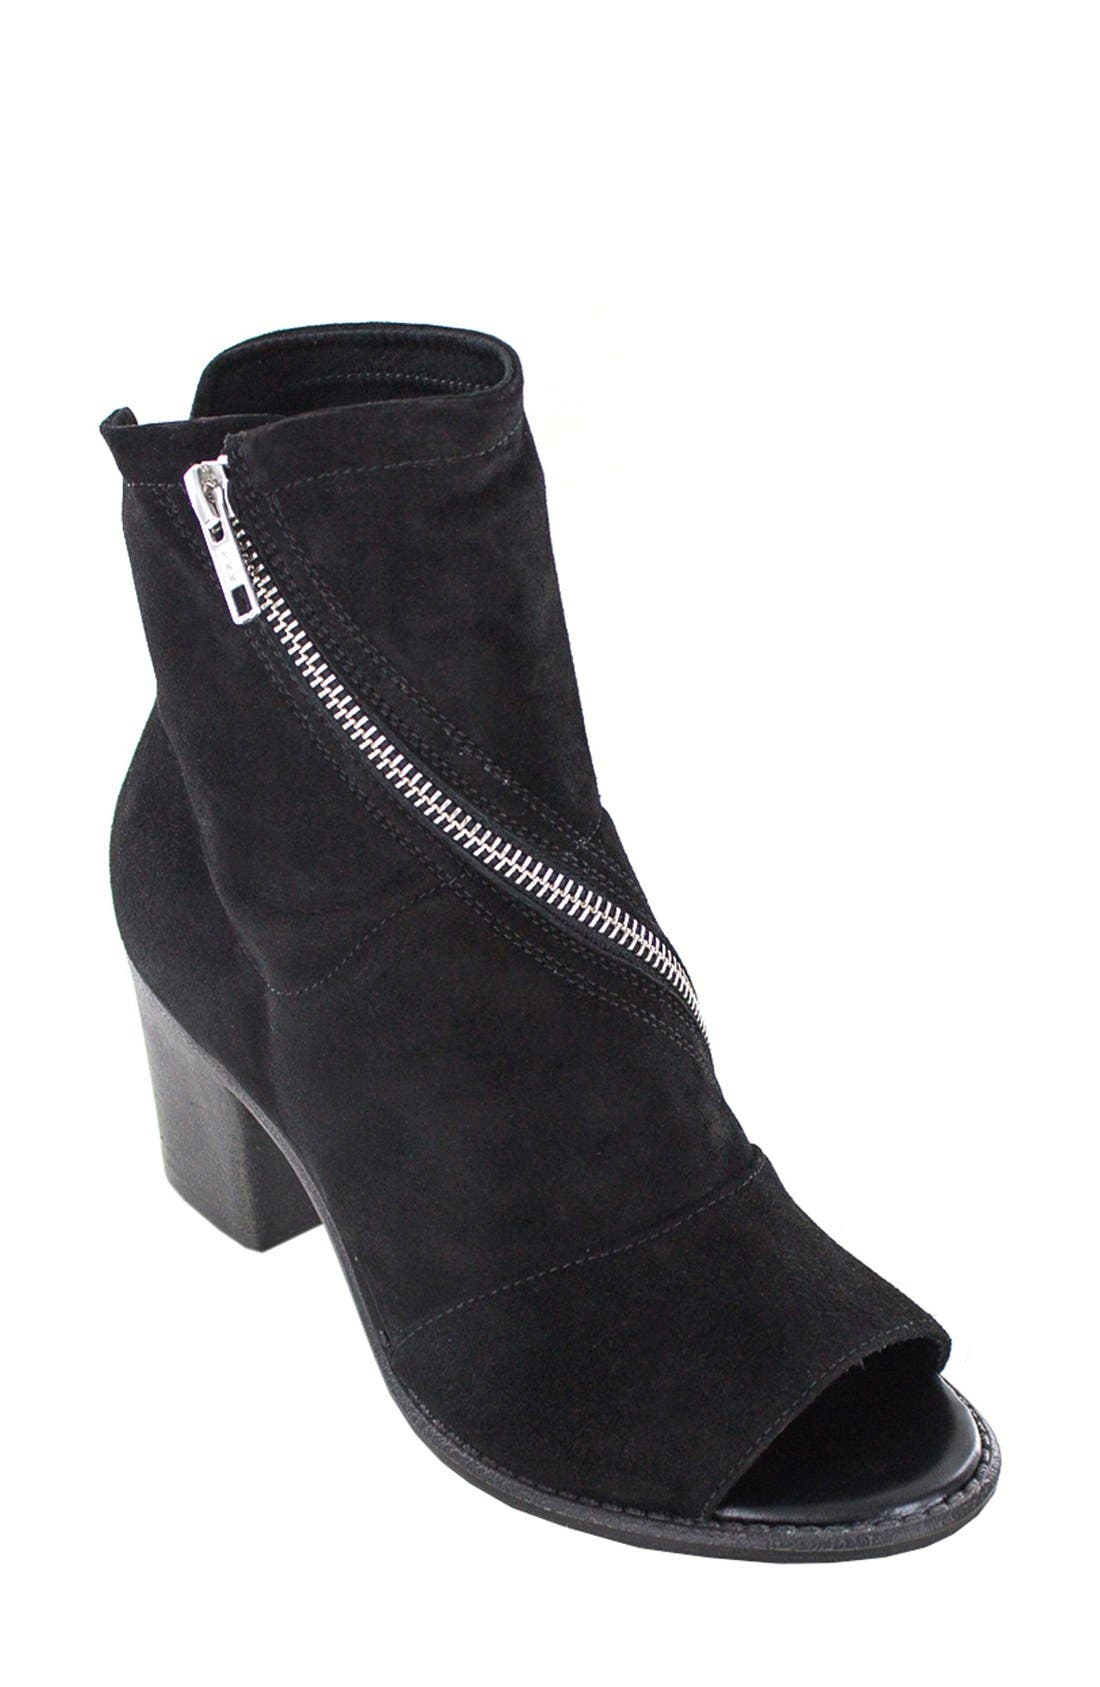 Alternate Image 1 Selected - Summit 'Fantasia' Open Toe Bootie (Women)